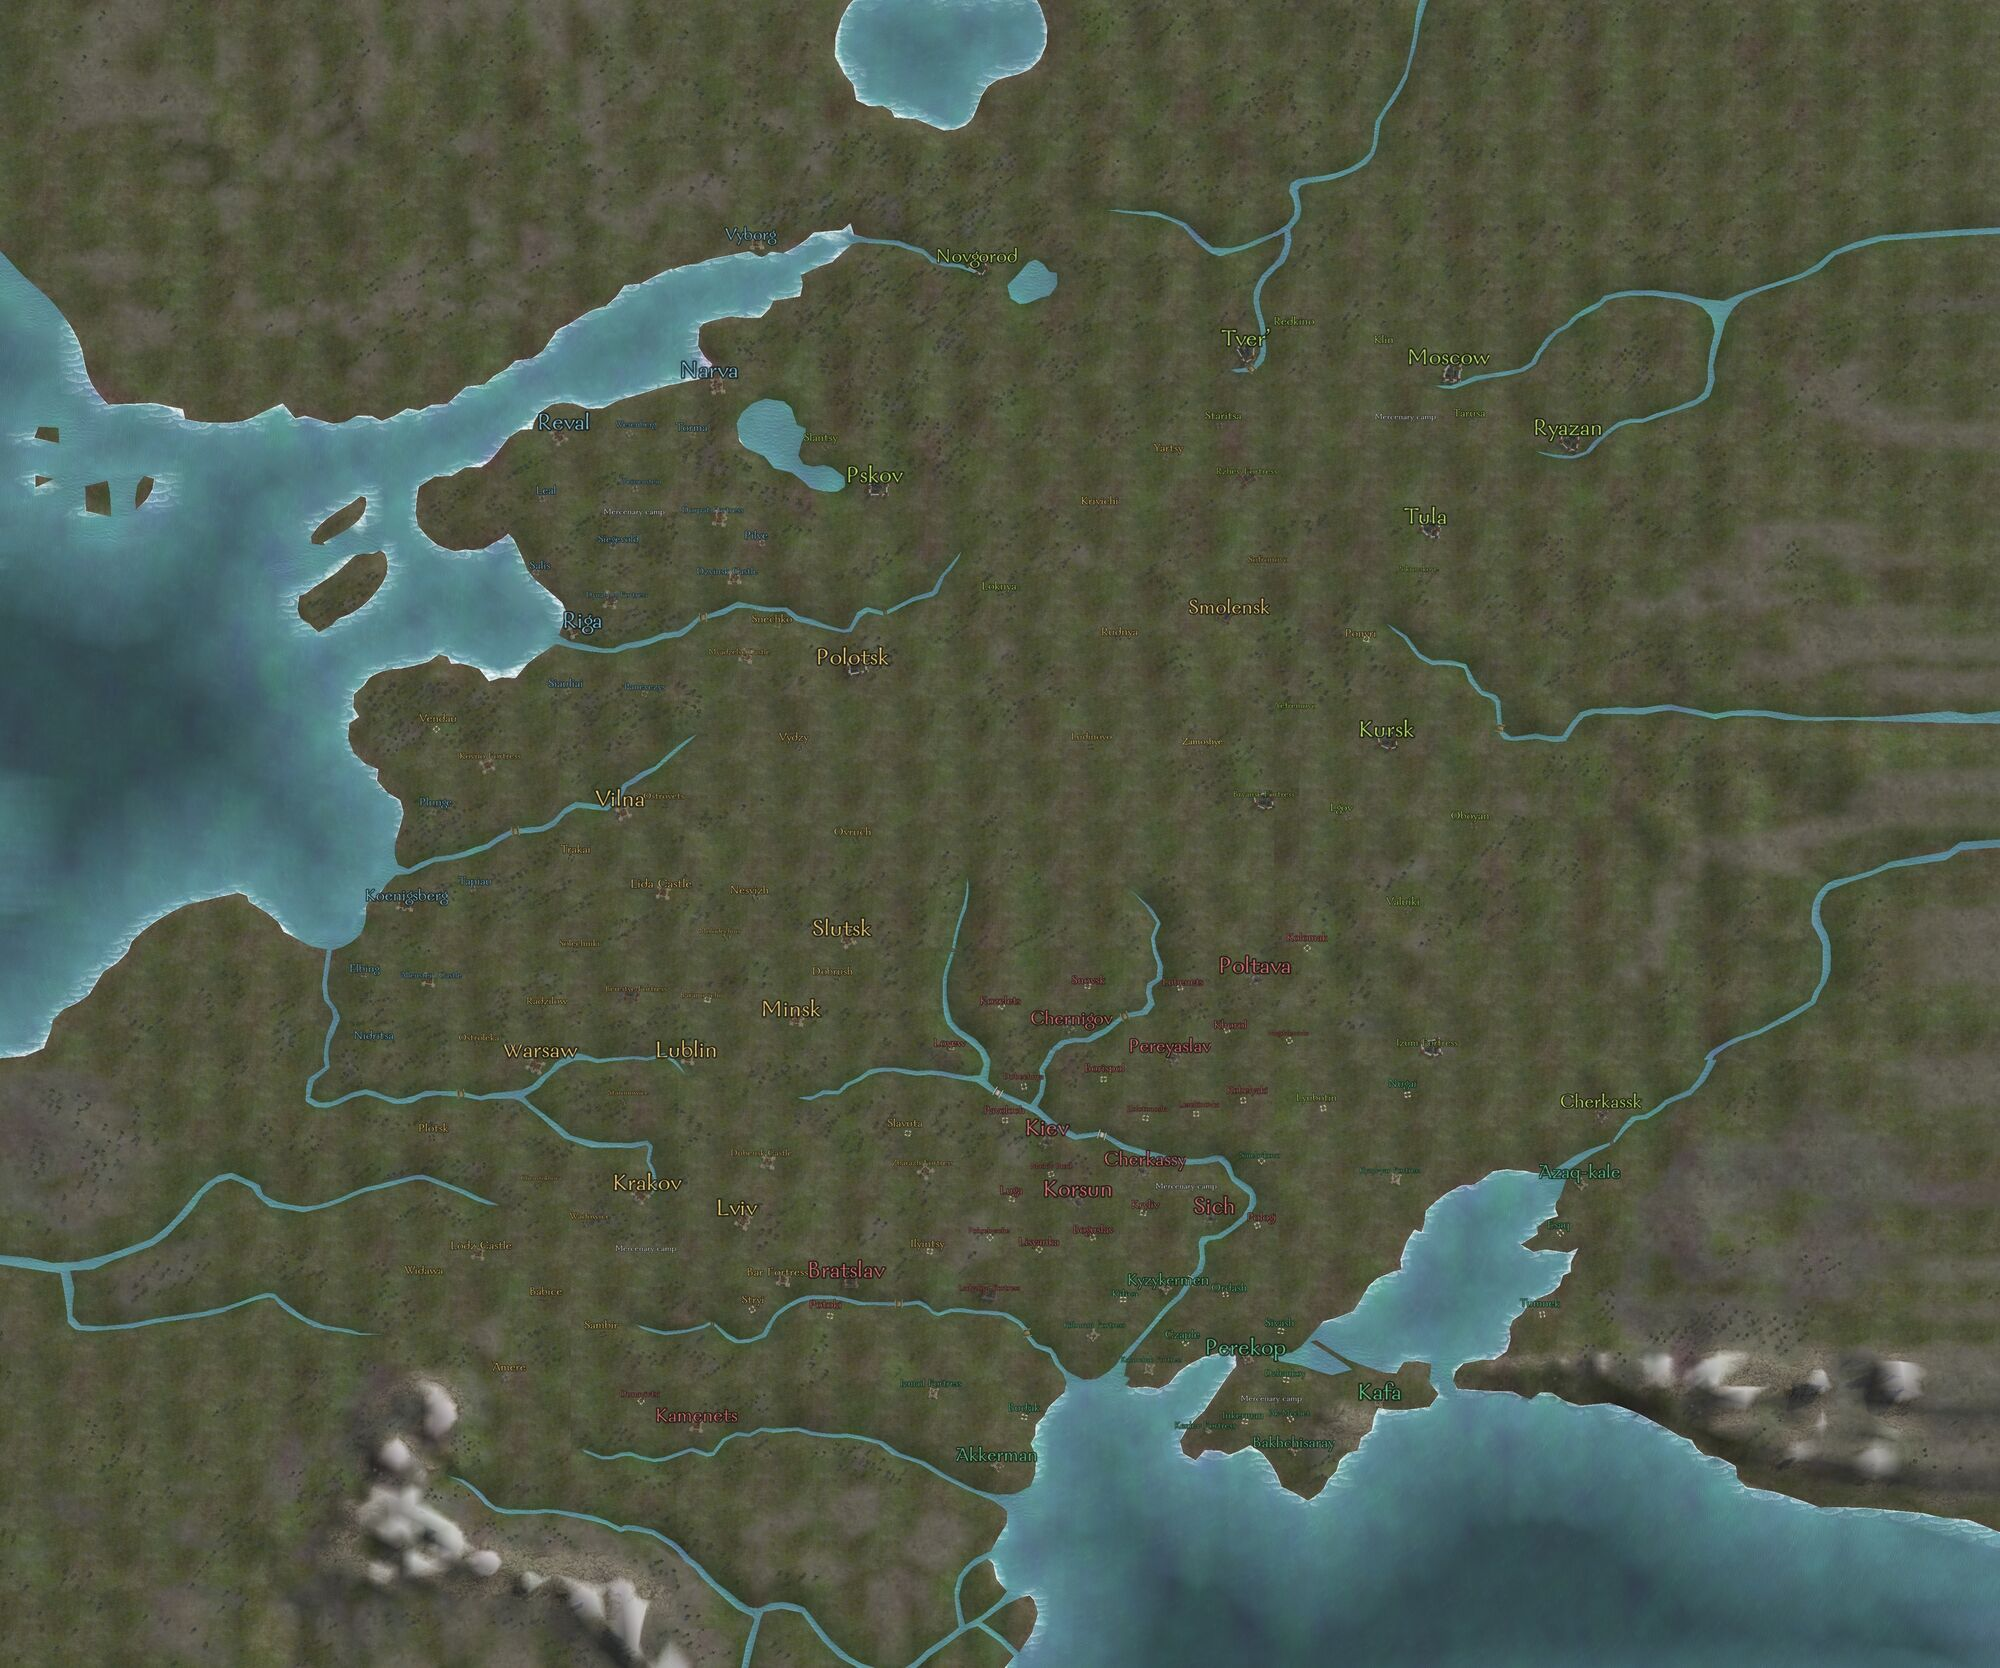 Overland map mount and blade wiki fandom powered by wikia mbwfas map gumiabroncs Choice Image